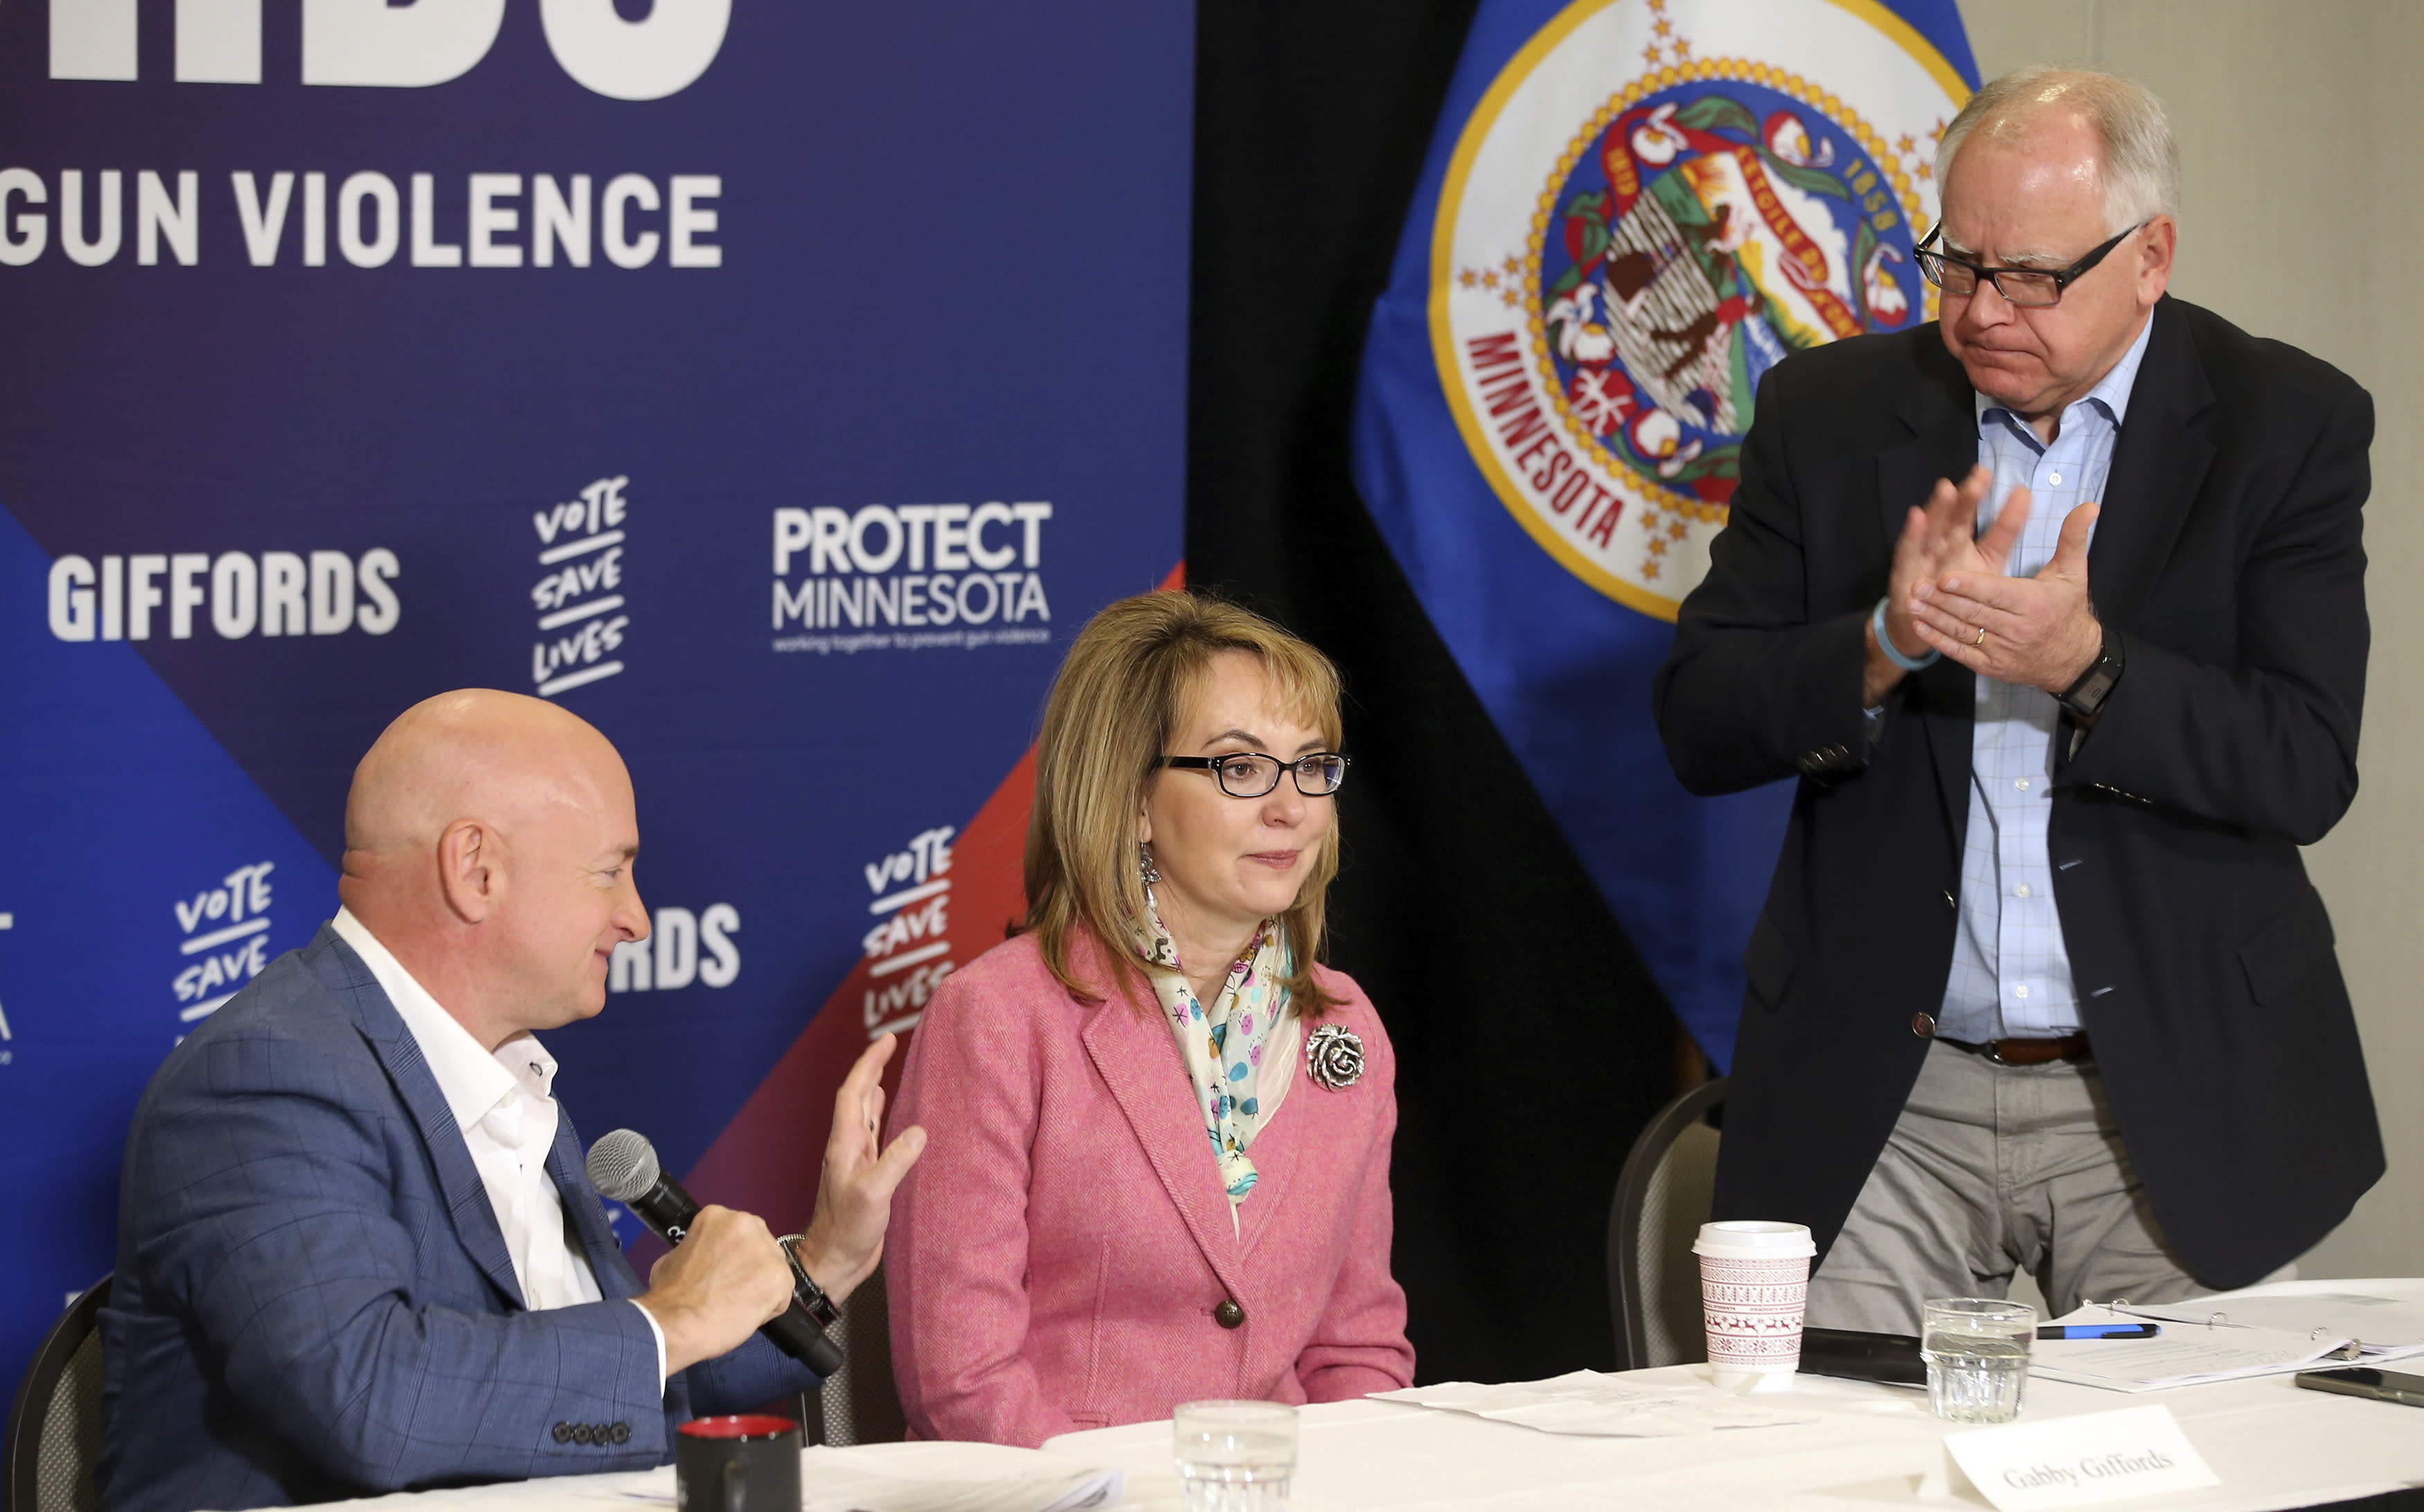 In this Oct. 26, 2018 photo, Minnesota gubernatorial candidate, Democrat Tim Walz, right, applauds as Capt. Mark Kelly, left, introduces his wife, former Rep. Gabby Giffords as they hosted a roundtable against gun violence in Minneapolis. The 2018 election marks the first time that groups supporting gun control measures could spend more on a campaign than the National Rifle Association. (AP Photo/Jim Mone)